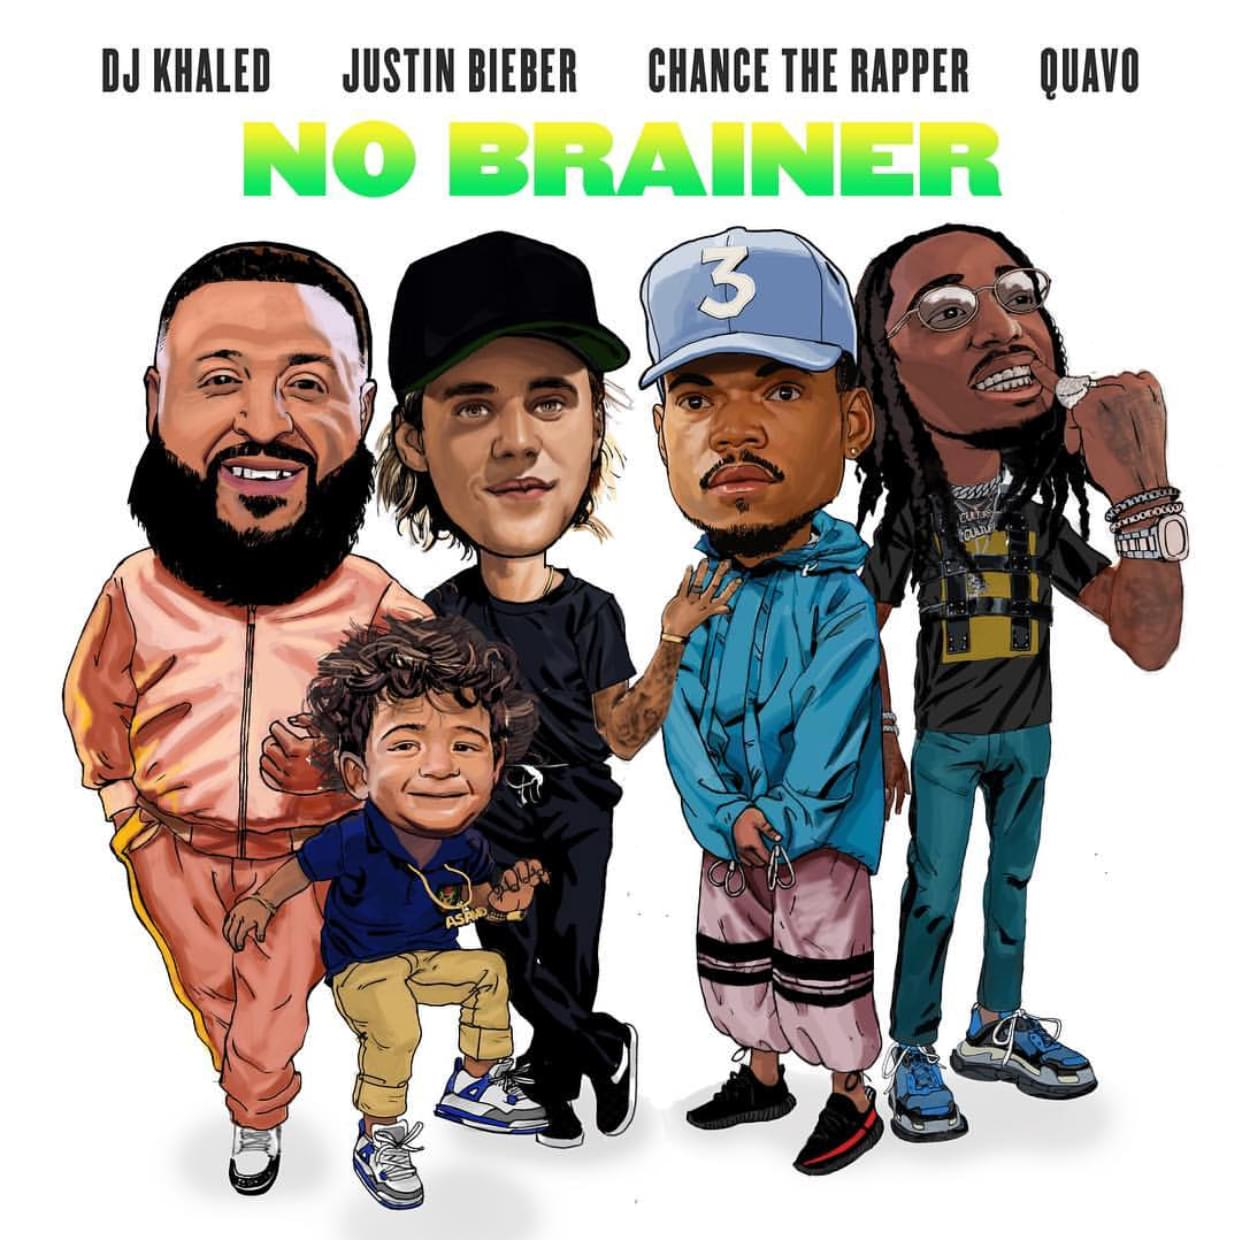 DJ Khaled, Justin Bieber, Chance the Rapper & Quavo Reunite 'No Brainer' (WATCH)